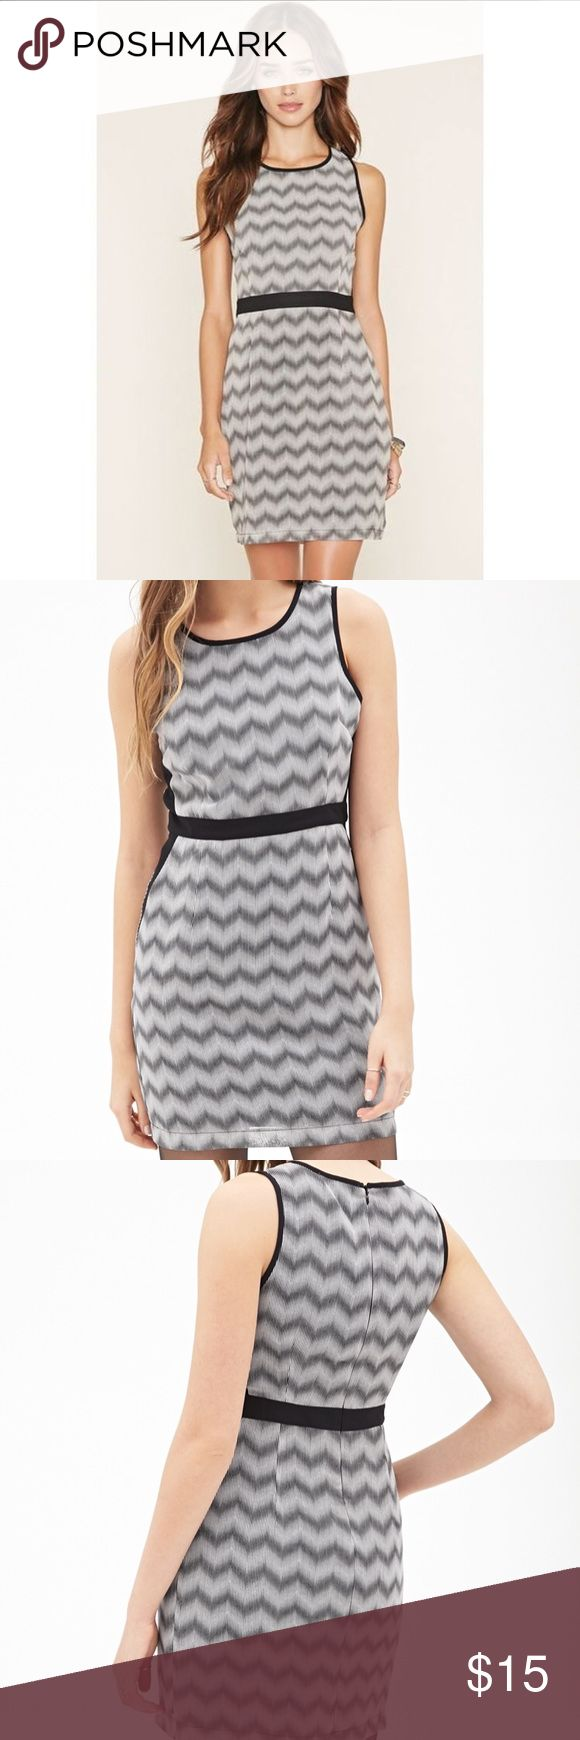 Colorblocked Chevron Print Dress Dress is brand new with tags, never worn before Forever 21 Dresses Mini